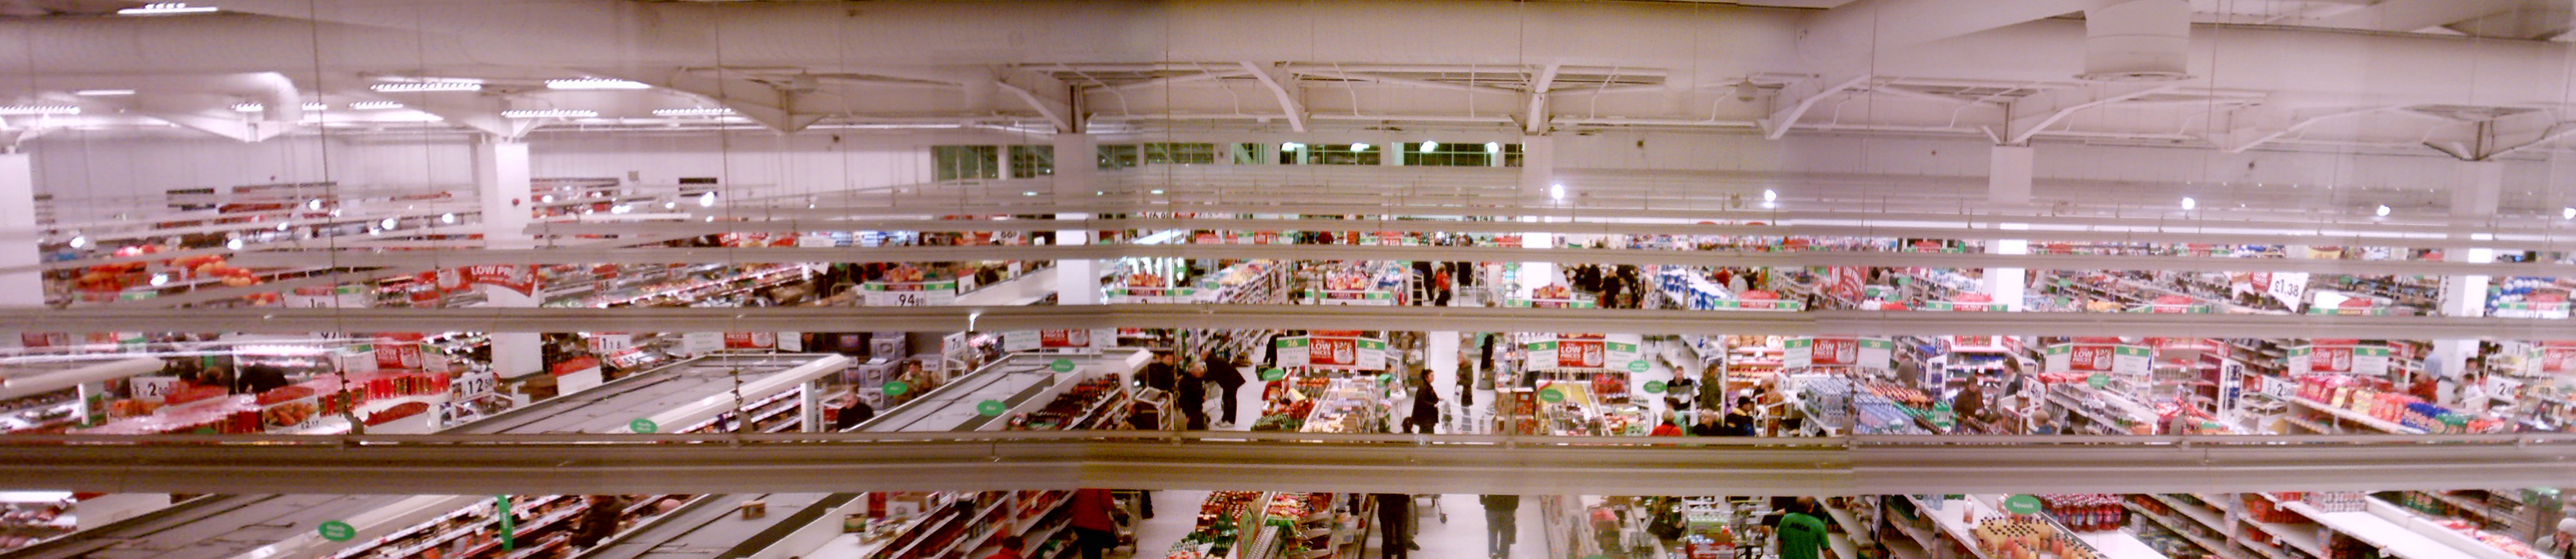 hypermarket and giant essay This paper is a company analysis on giant hypermarket malaysia in general, but specifically focusing on giant hypermarket sabah giant hypermarket.